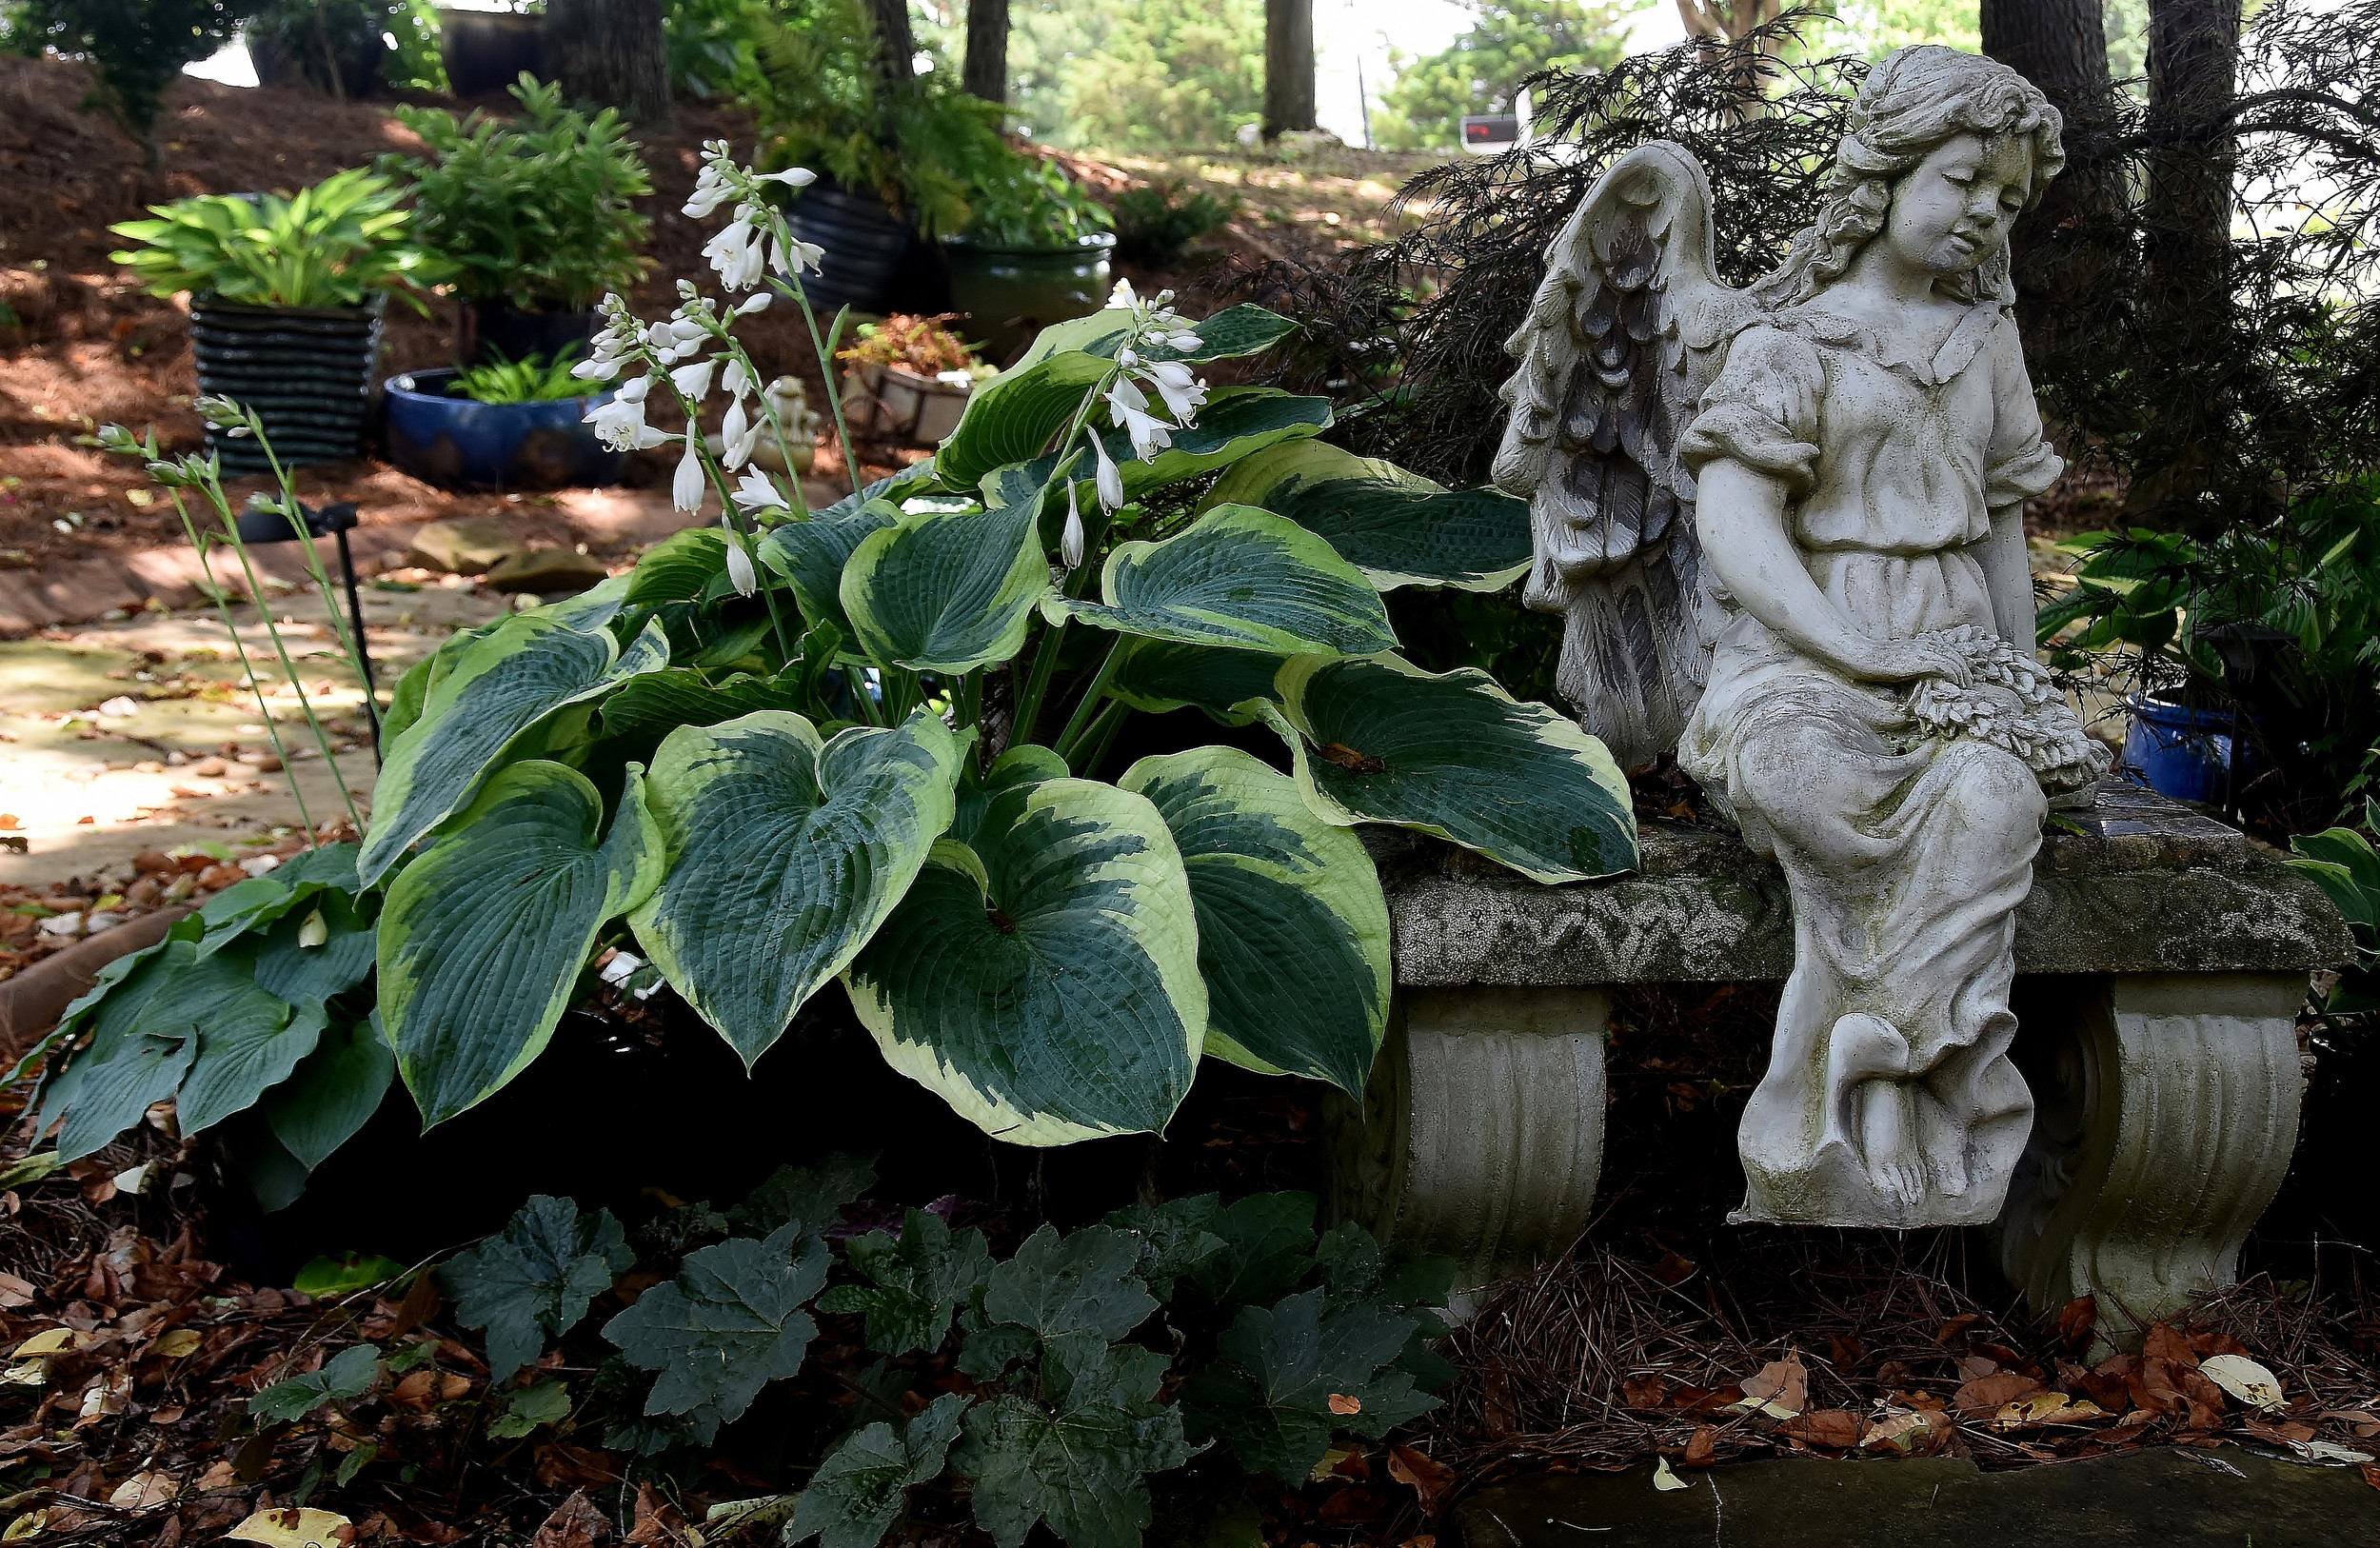 Ken and Curlette Hennard's gardens feature a variety of flowers and plants with artistic accents.